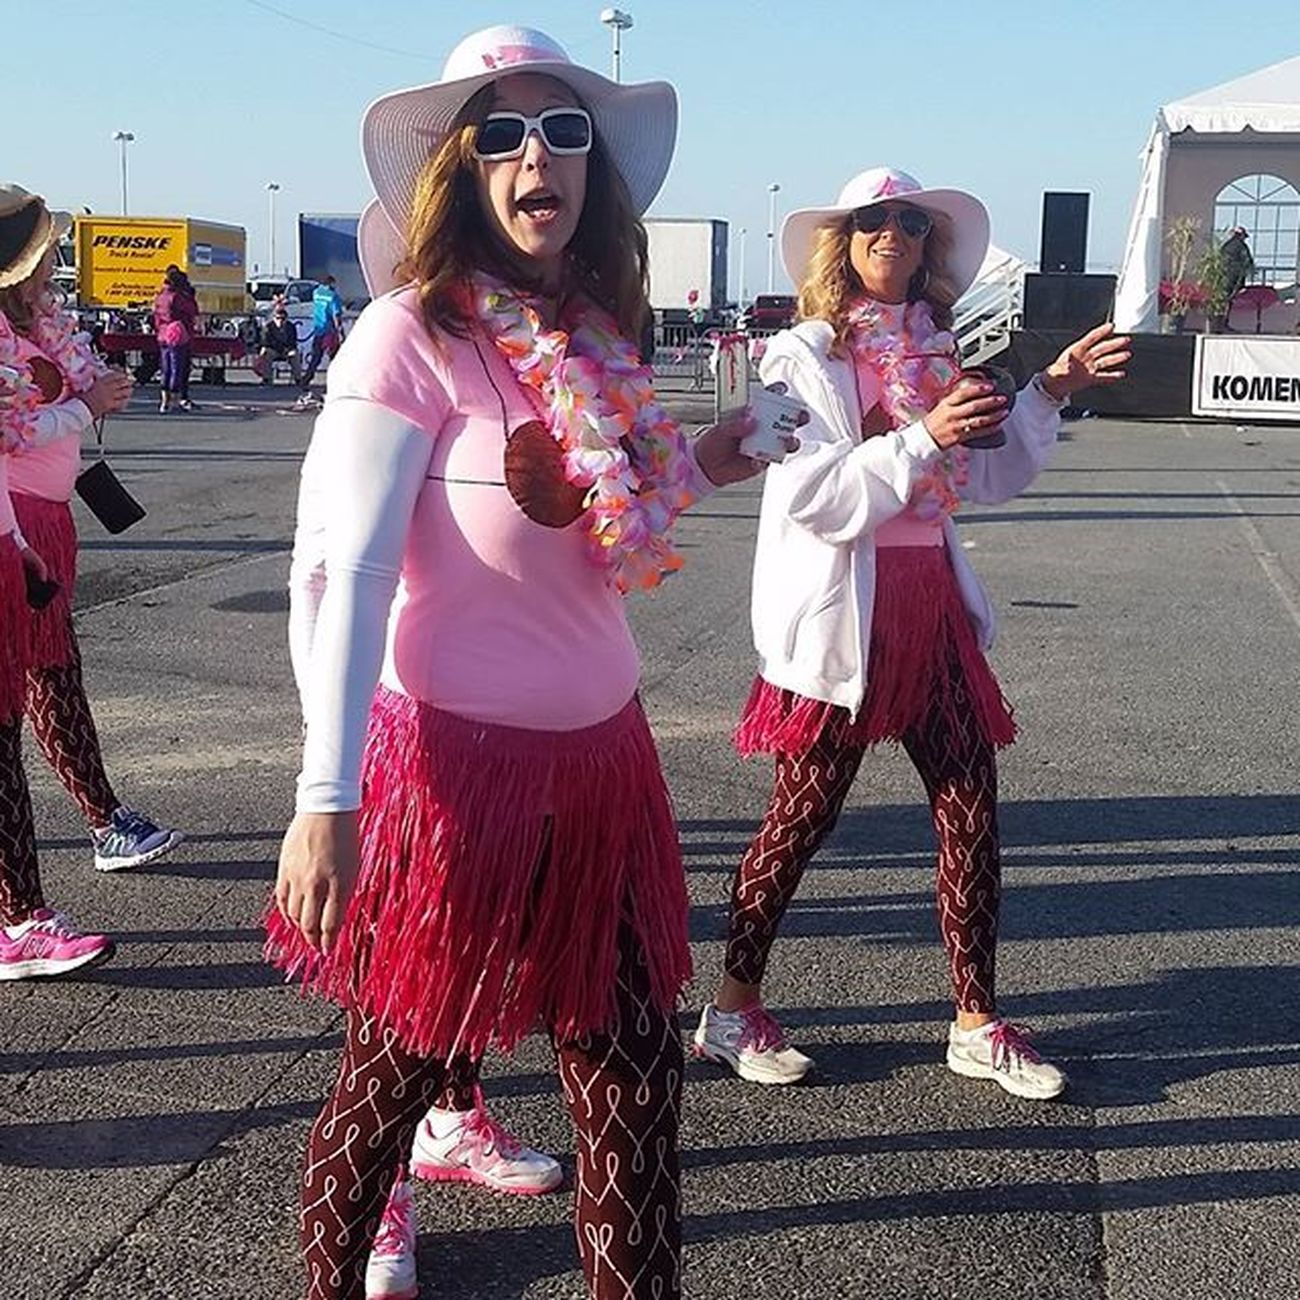 The Coconuts ready to run at the Komen Race for the Cure... Oceancitycool OceanCity Maryland Ocmd Onestepcloser